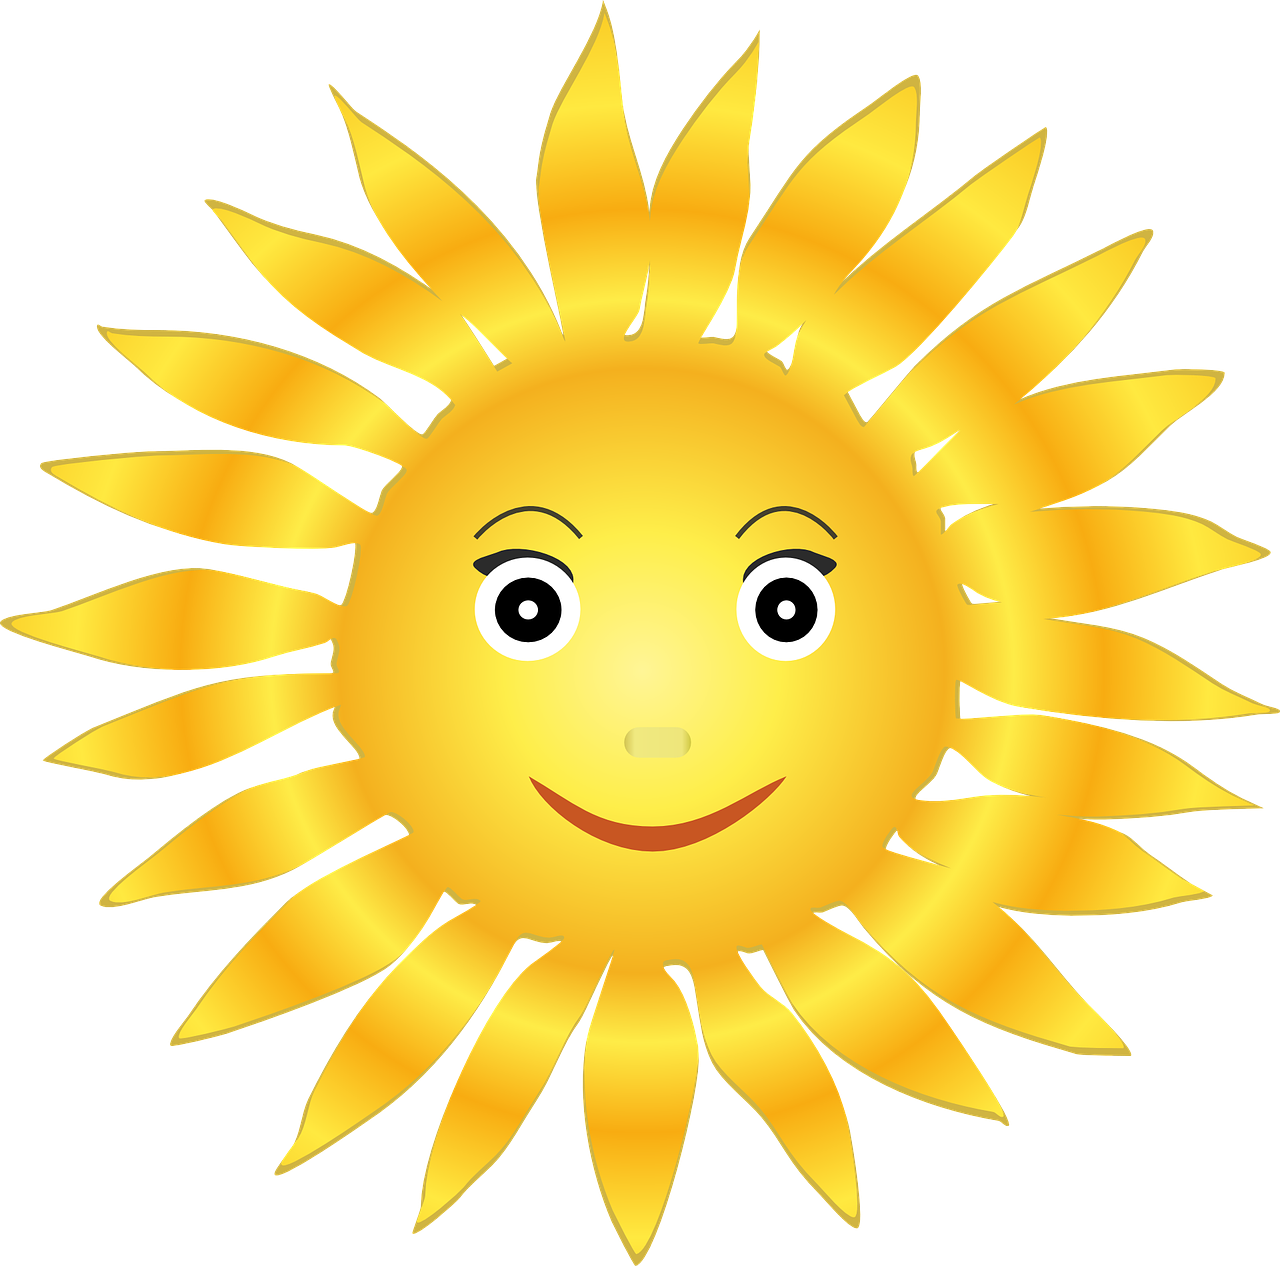 Scientific sun clipart image free library Sunscreens Explained | image free library